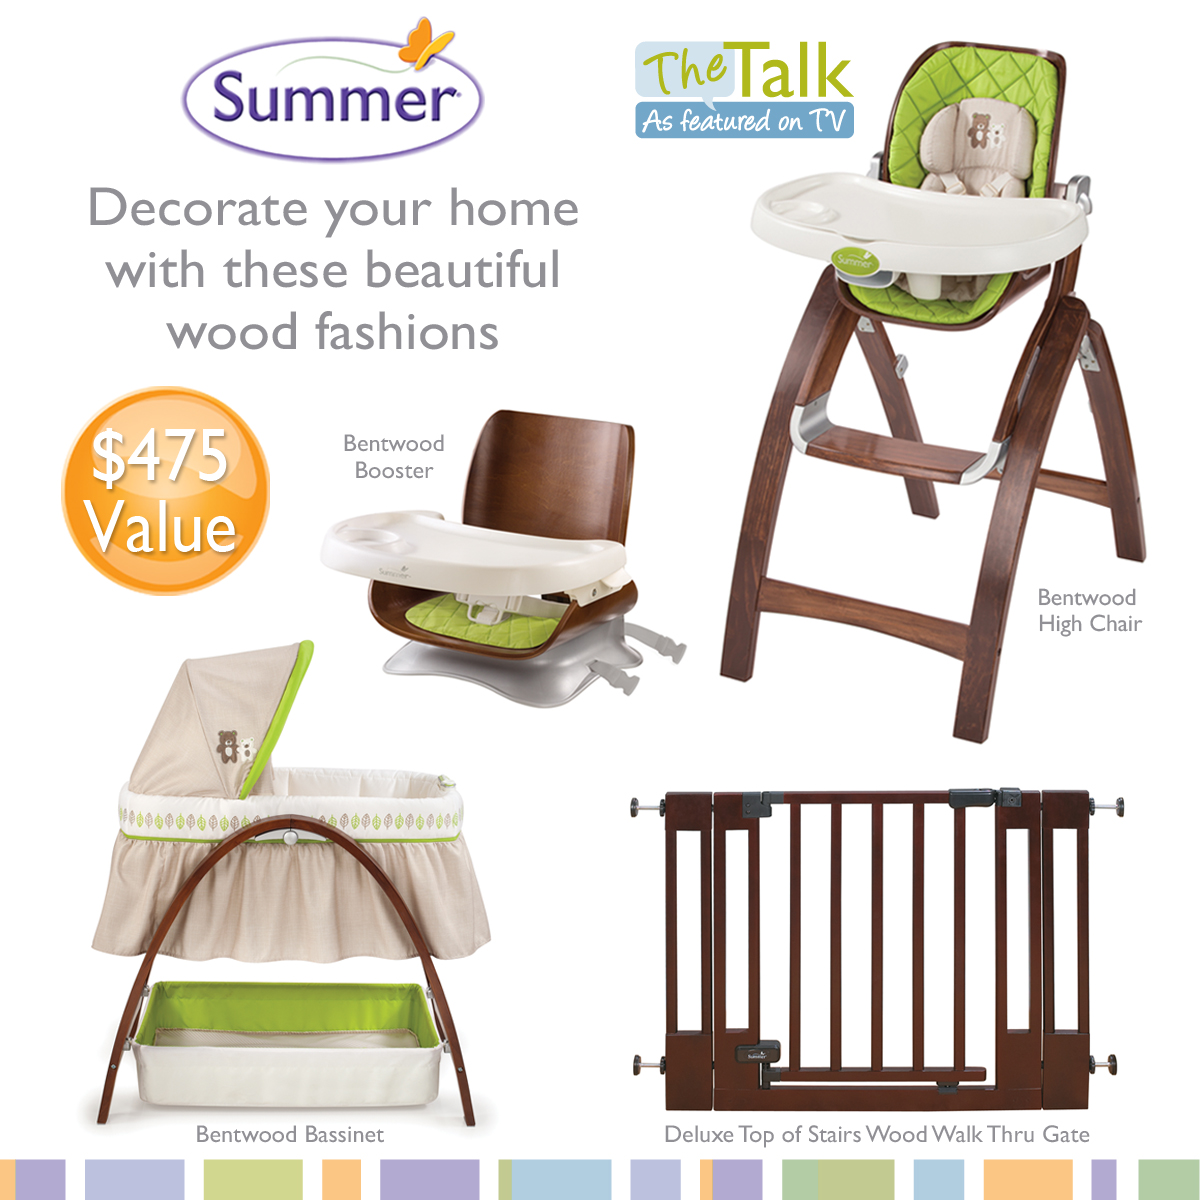 Charmant Summer Infant Sweepstakes The Talk. The Bentwood High Chair ...